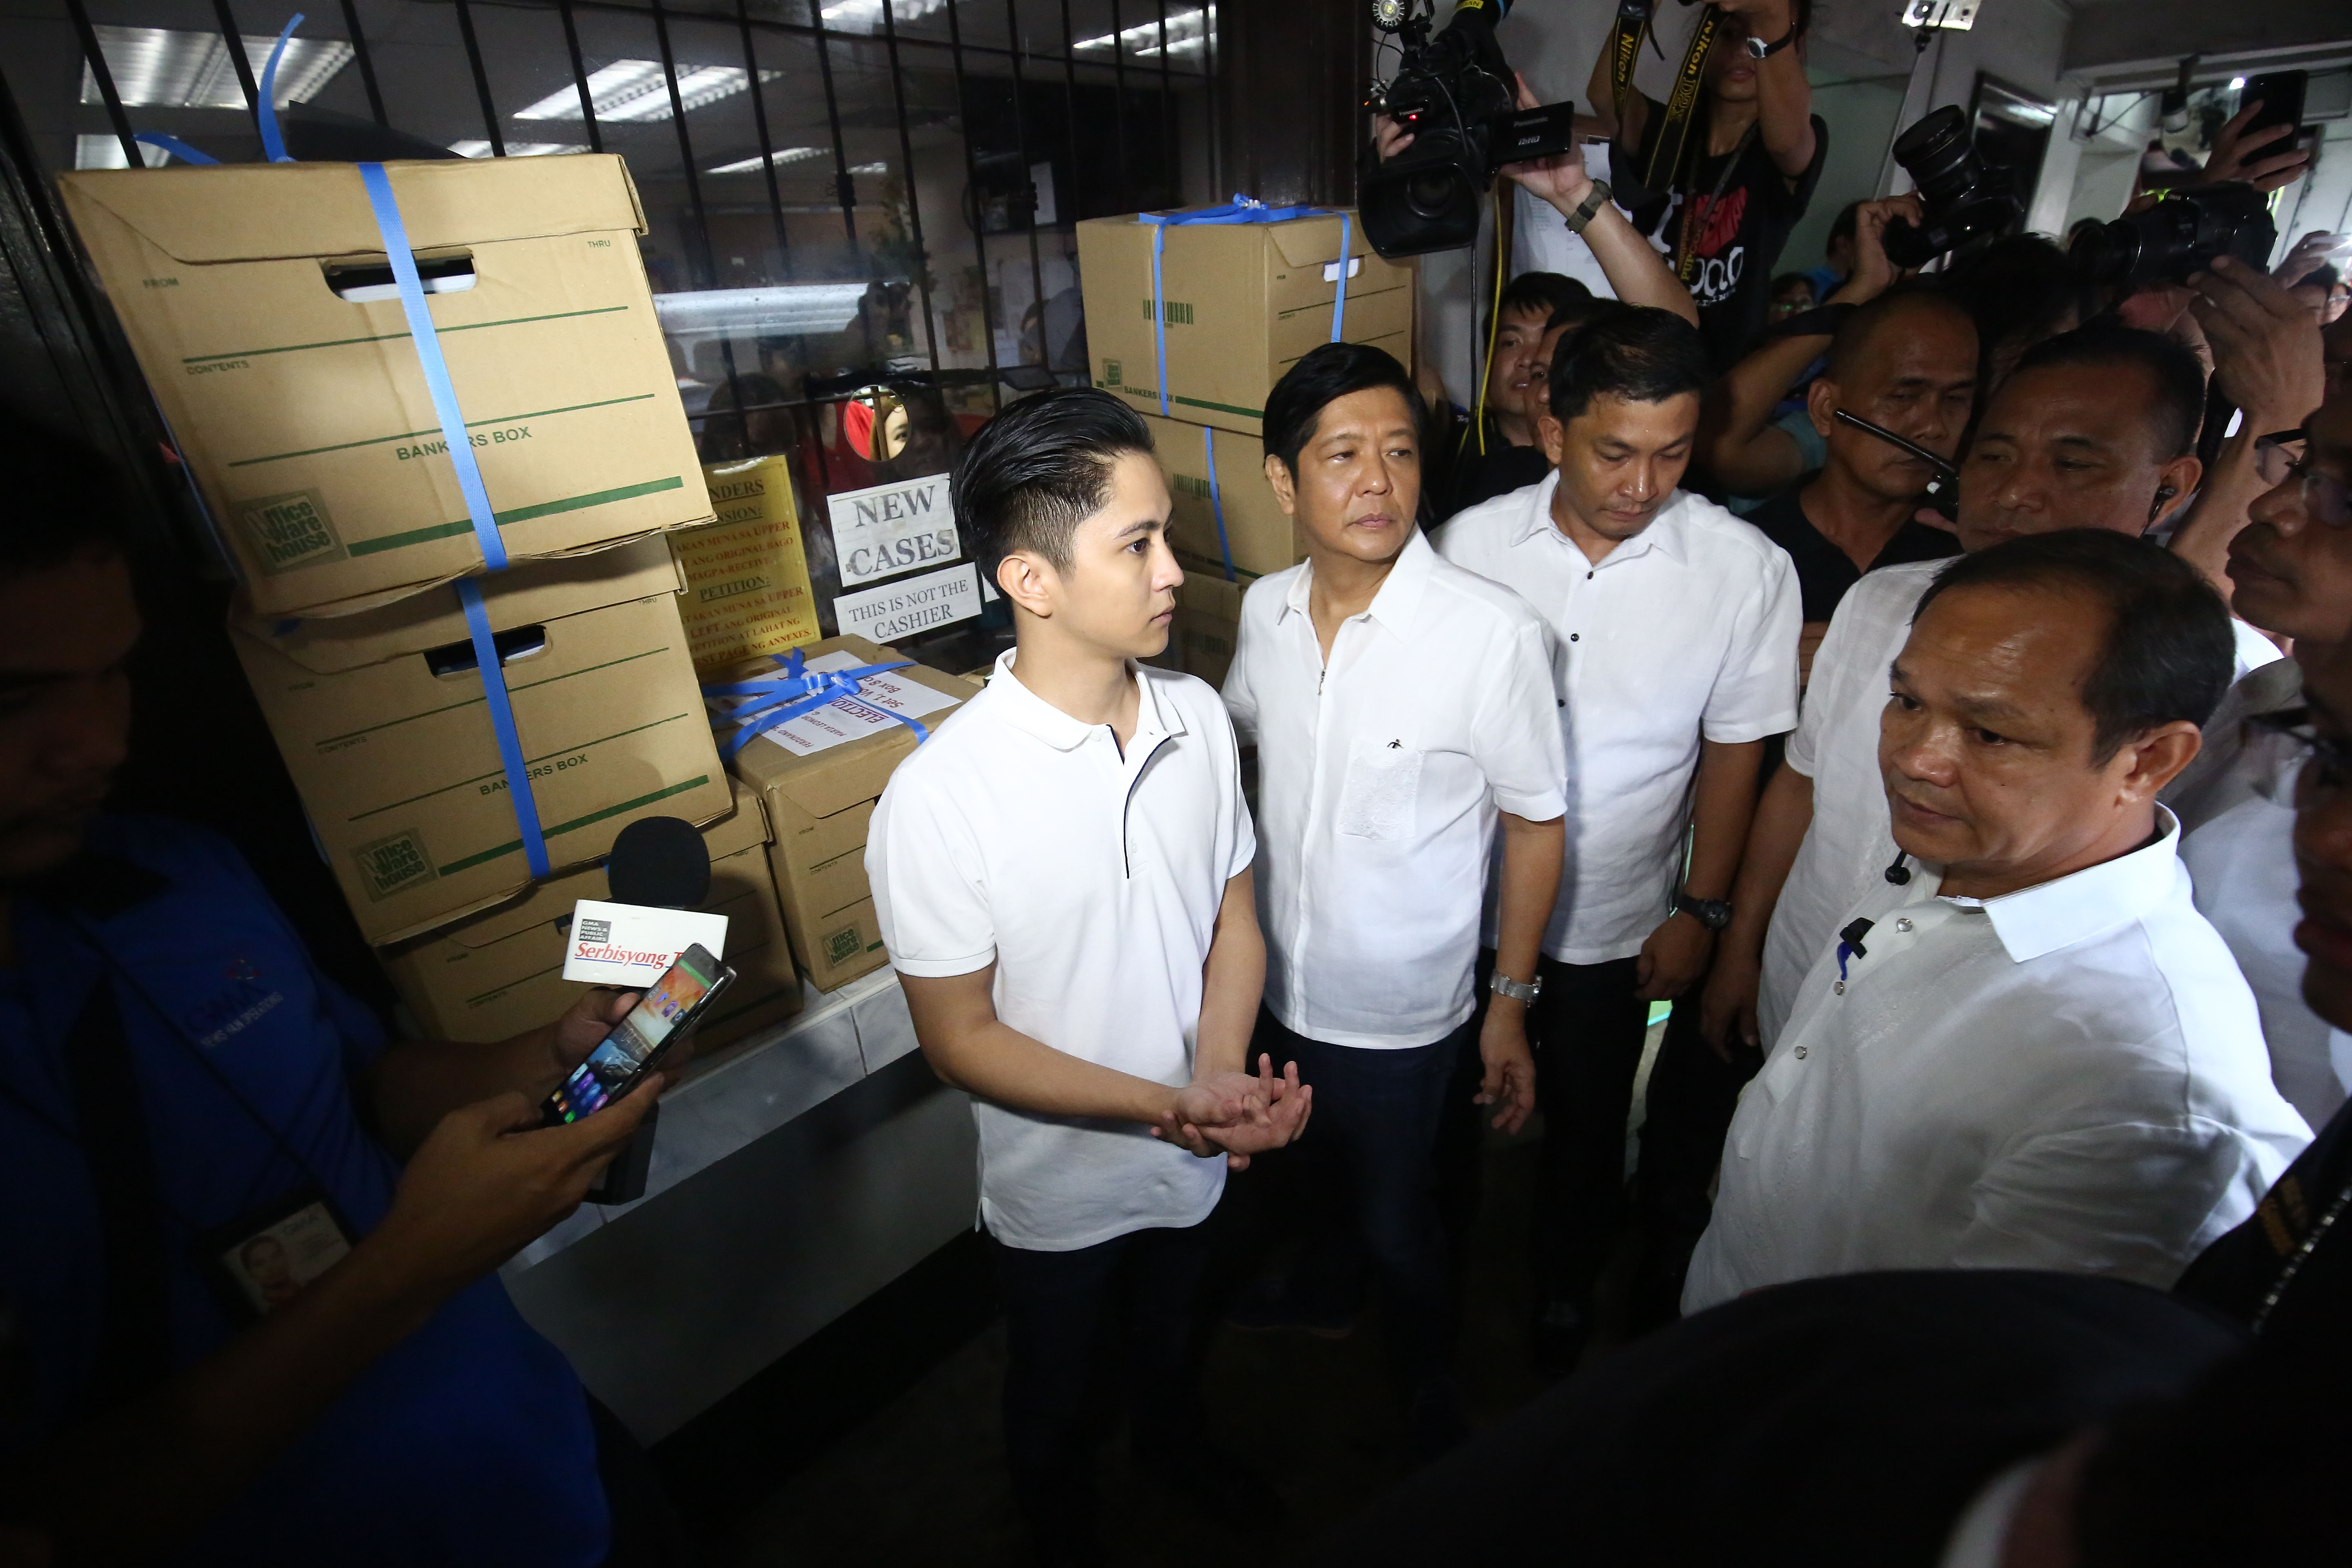 NOT DILG? File of defeated vice presidential candidate Bongbong Marcos. File photo by Ben Nabong/Rappler